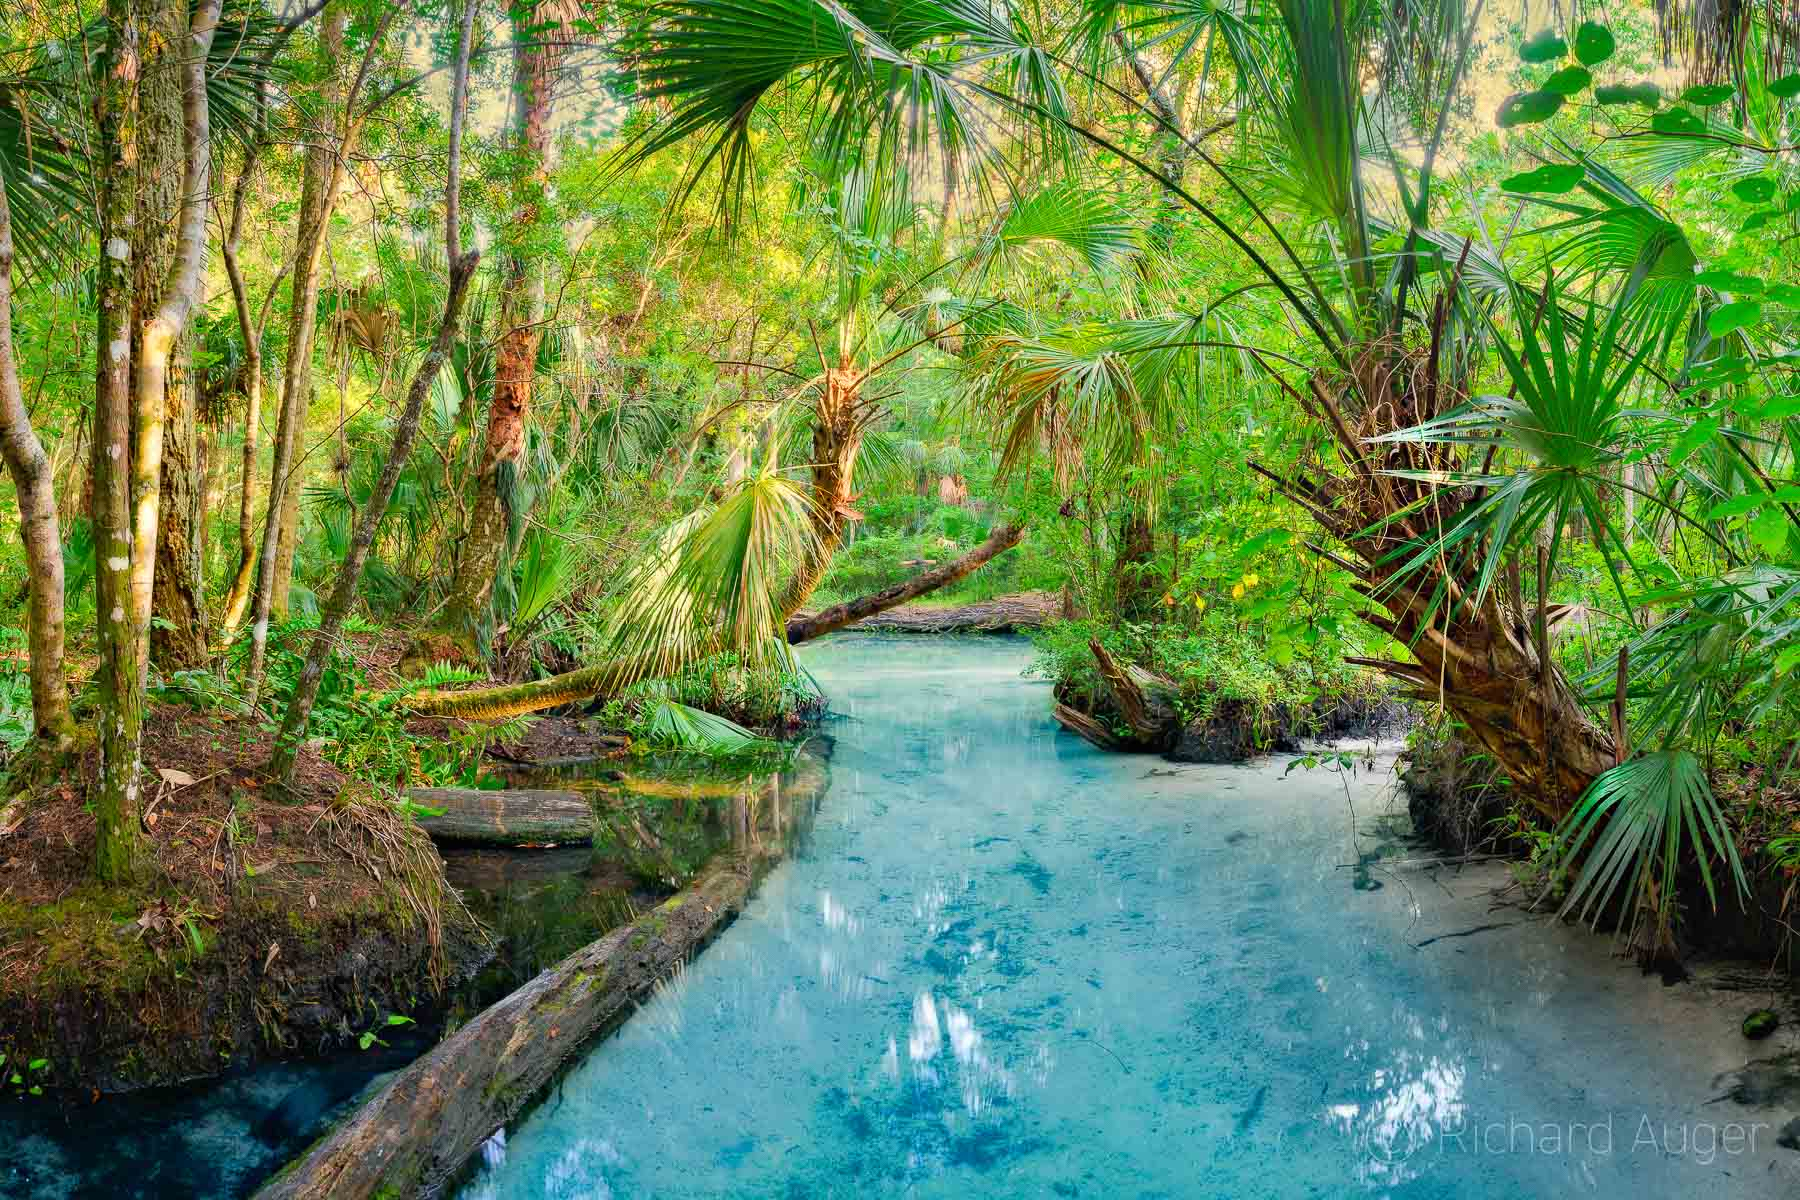 Chassahowitzka River, Baird Creek, Florida, Spring, kayaking, palm trees, nature, photograph, photo, photographer, landscape